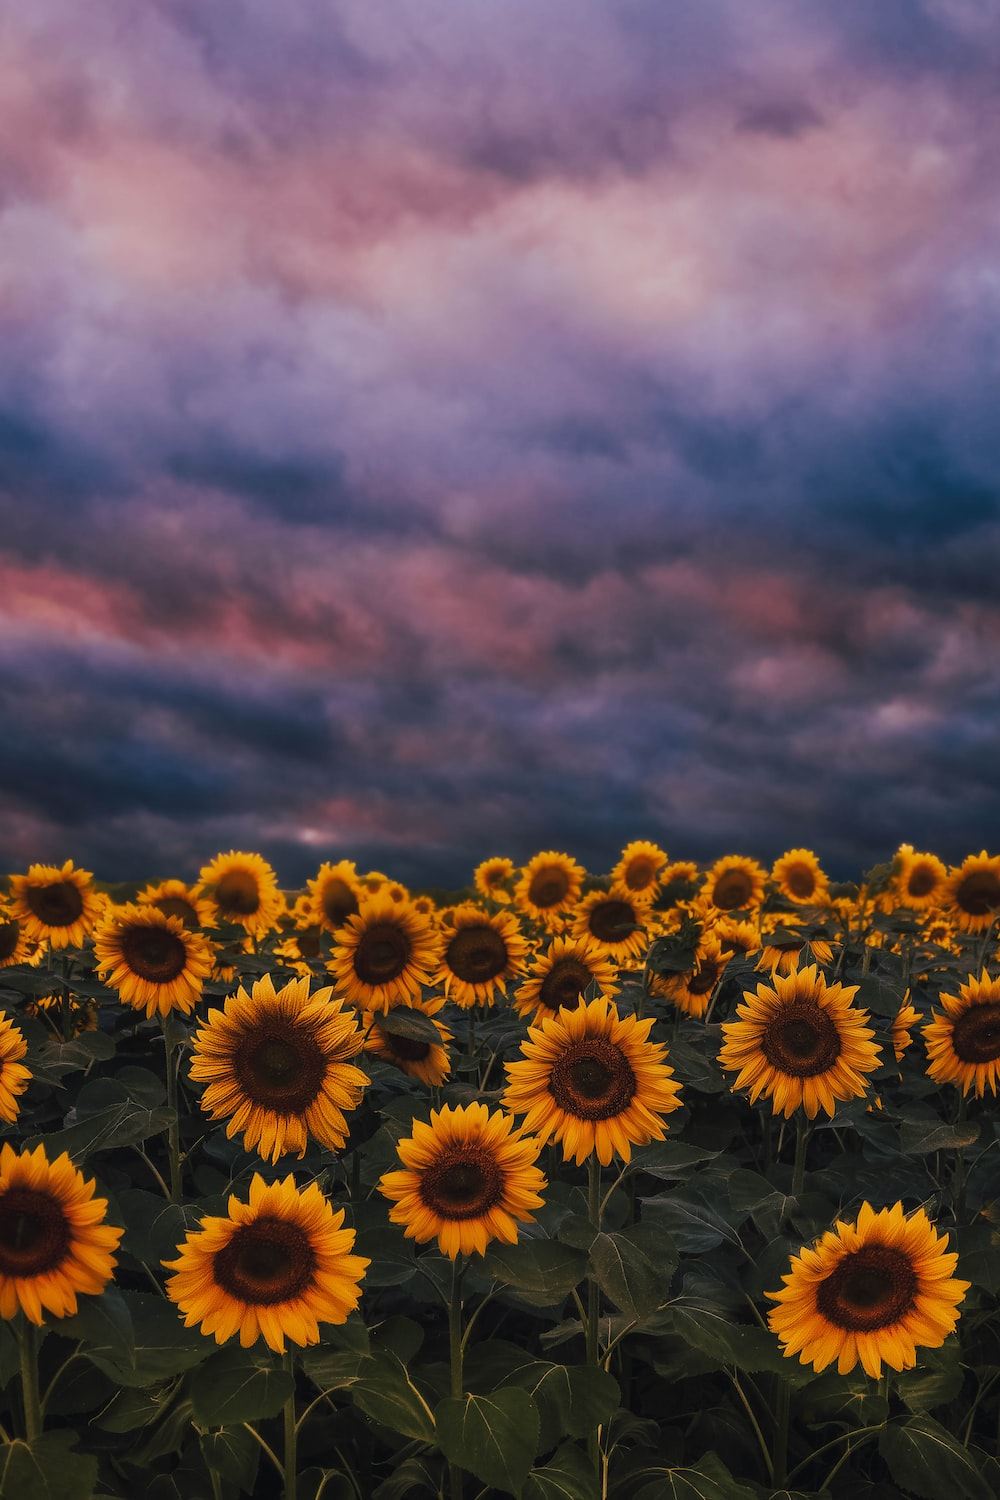 yellow sunflower field under cloudy sky during daytime